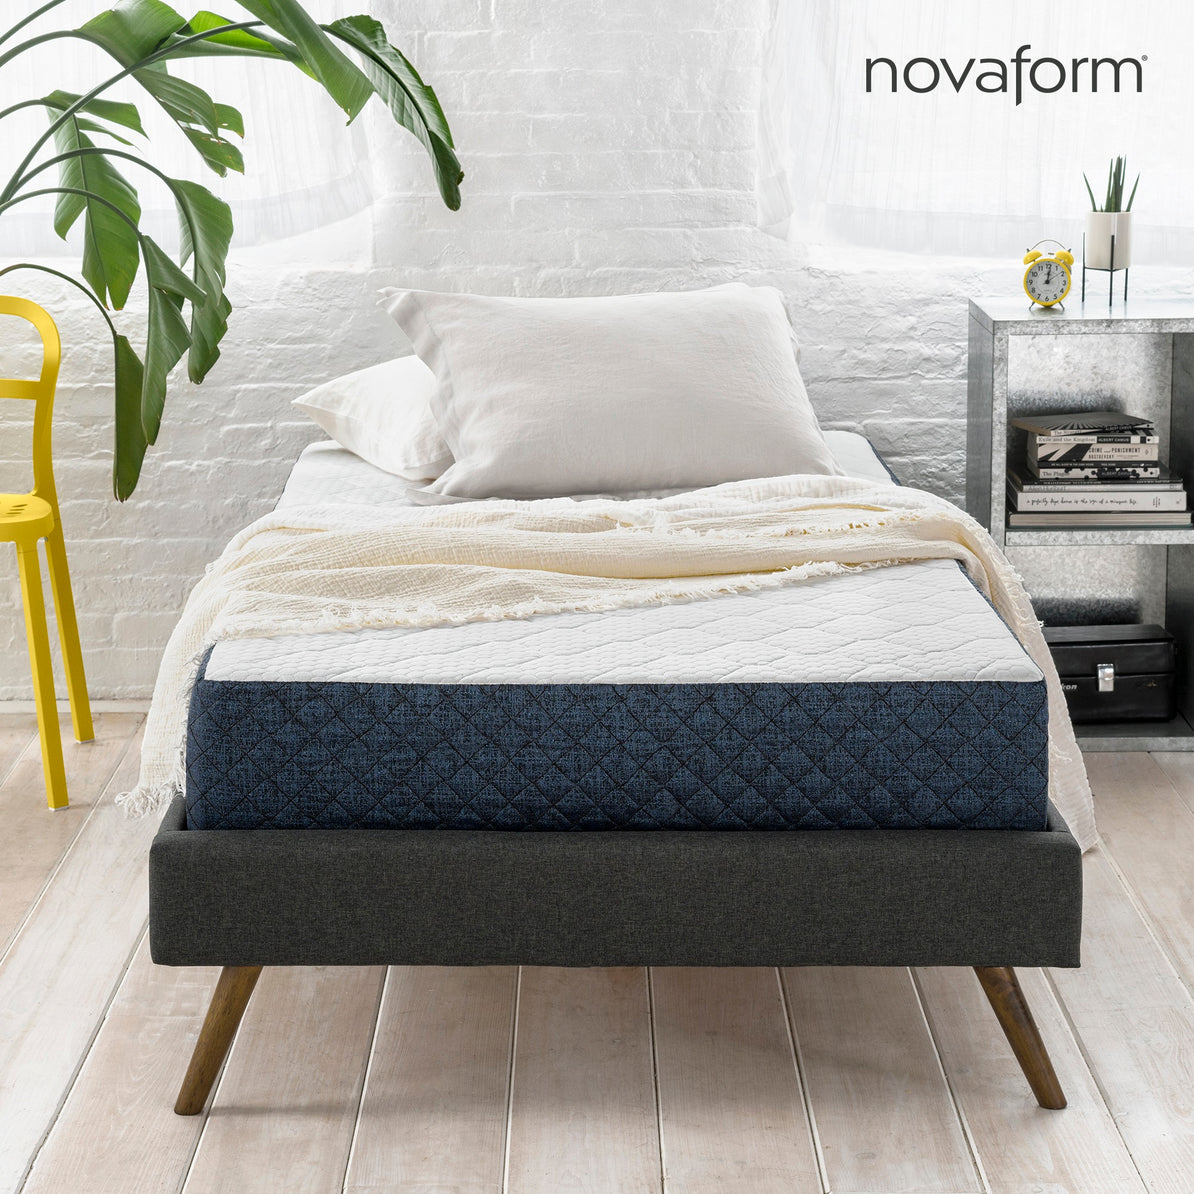 Novaform Mattress Review 2019 The Complete Guide